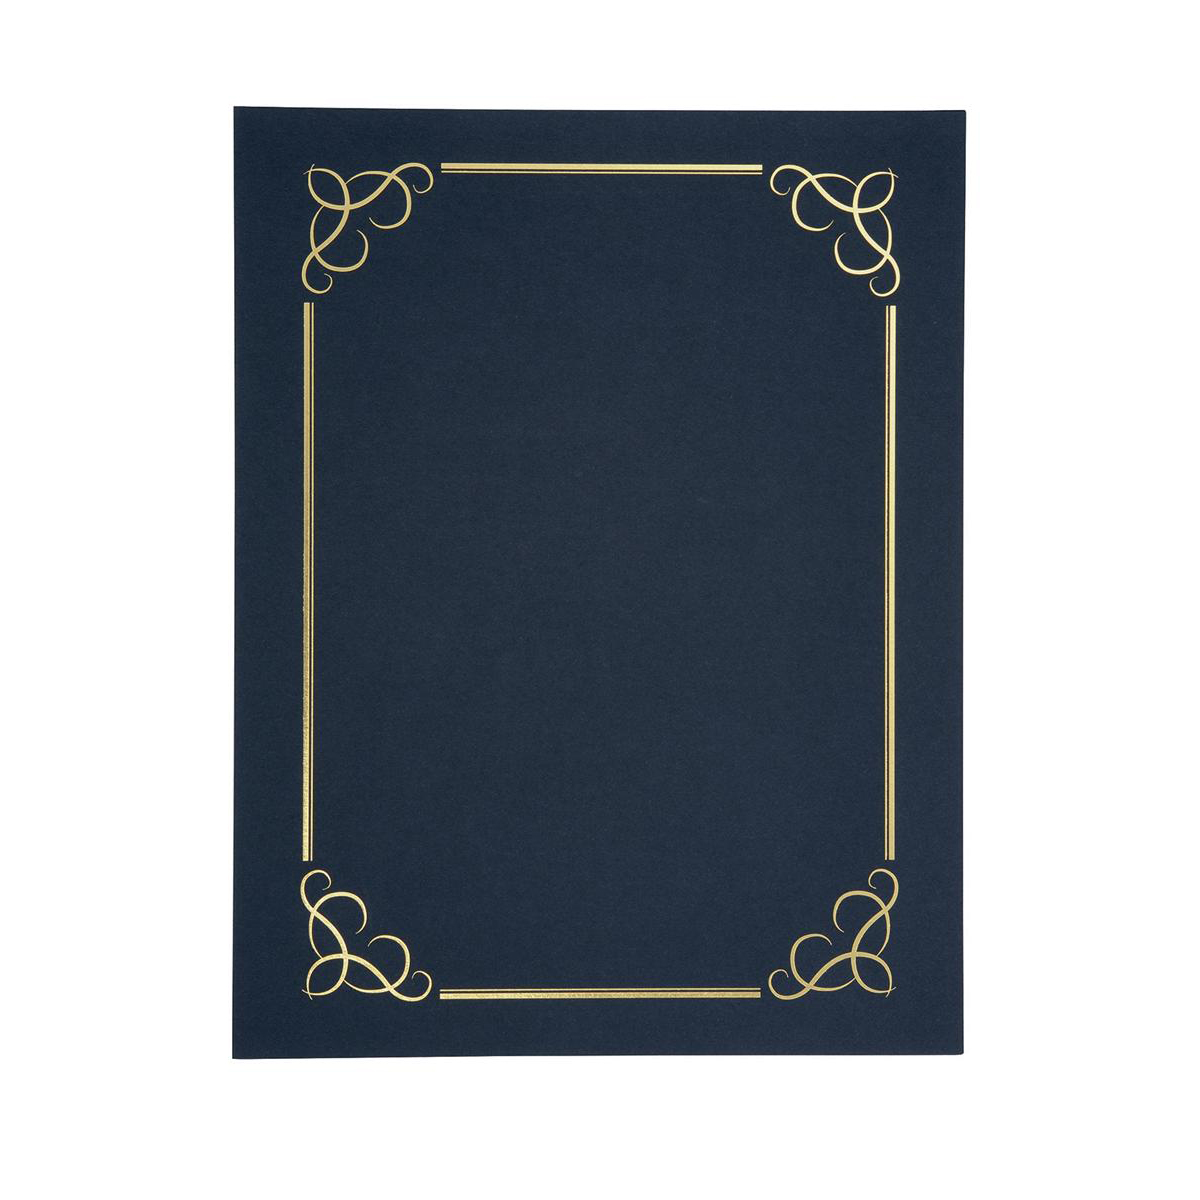 Certificate Paper & Covers Certificate Covers Linen Finish Heavyweight Card 240g A4 Blue Pack 5